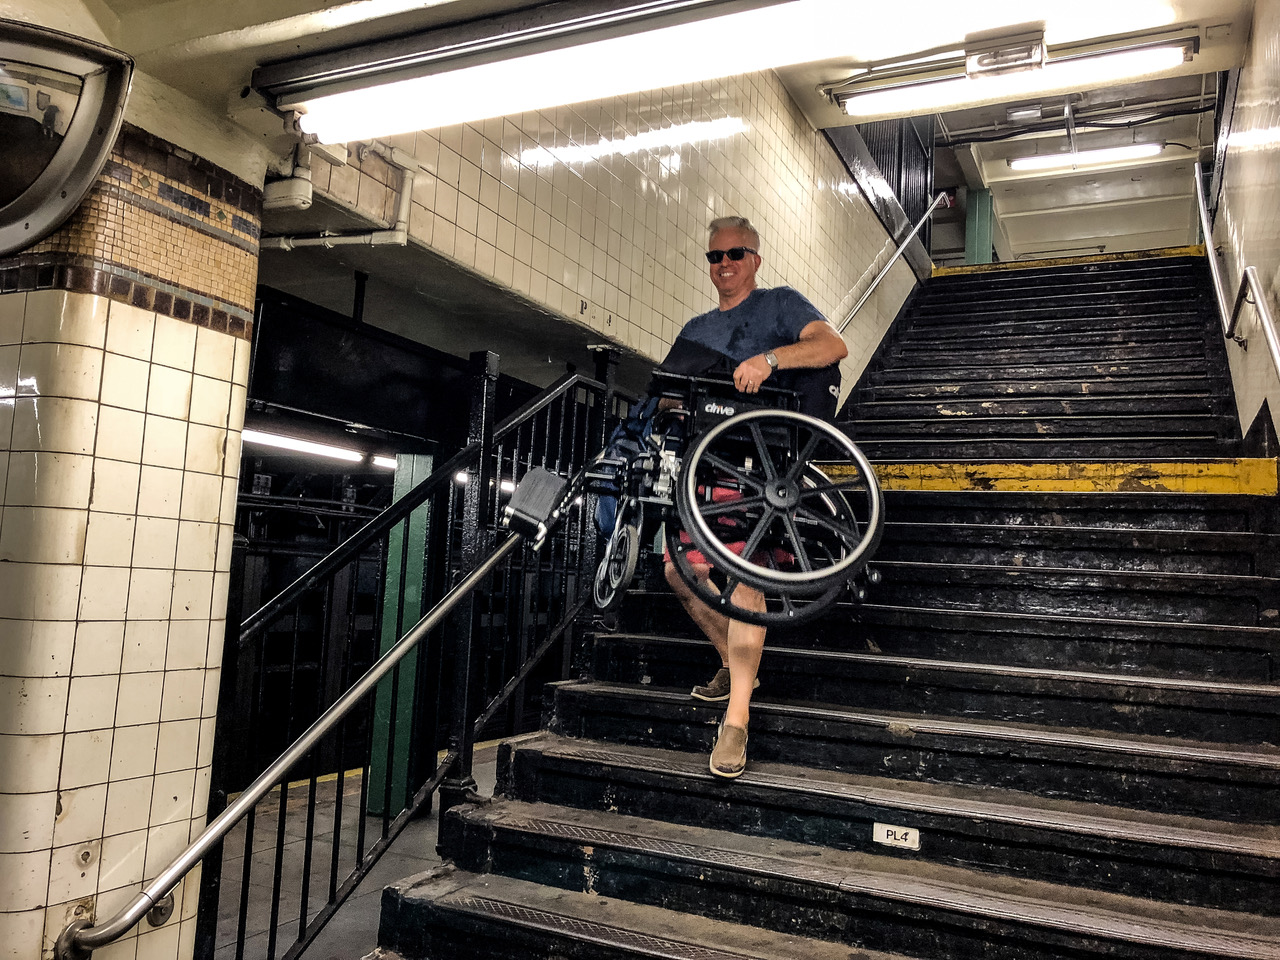 Now I can carry Michael's wheelchair down the subway stairs no sweat!